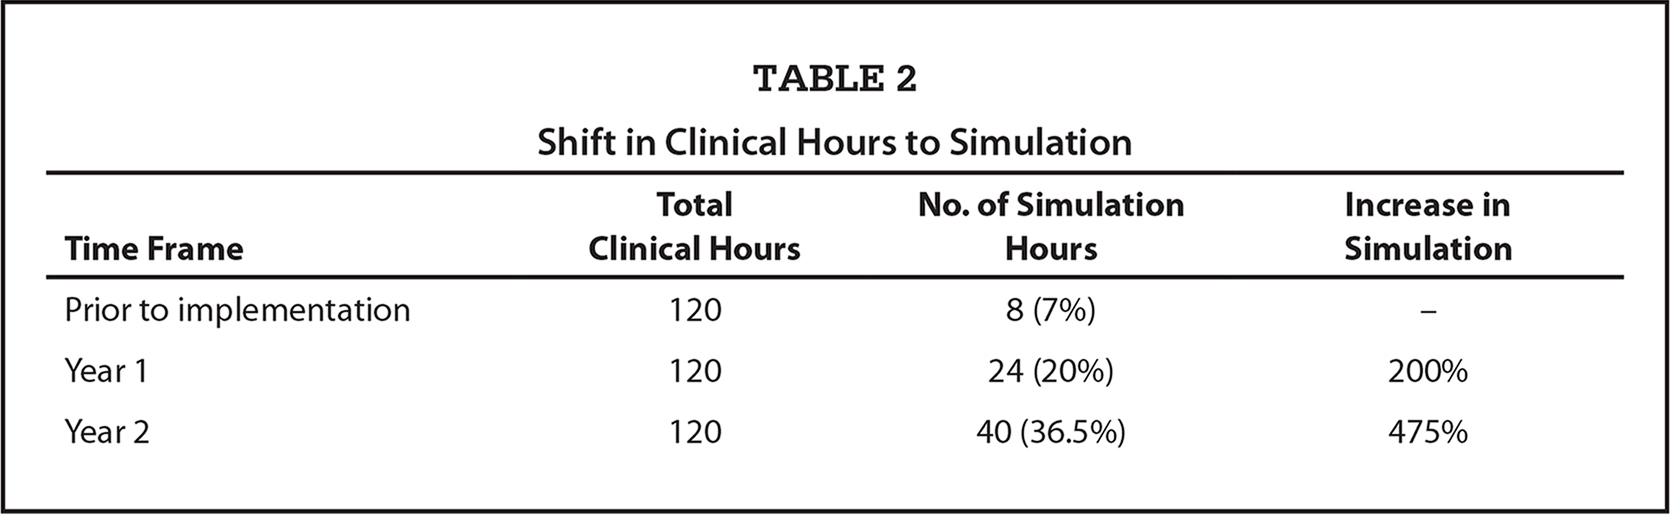 Shift in Clinical Hours to Simulation